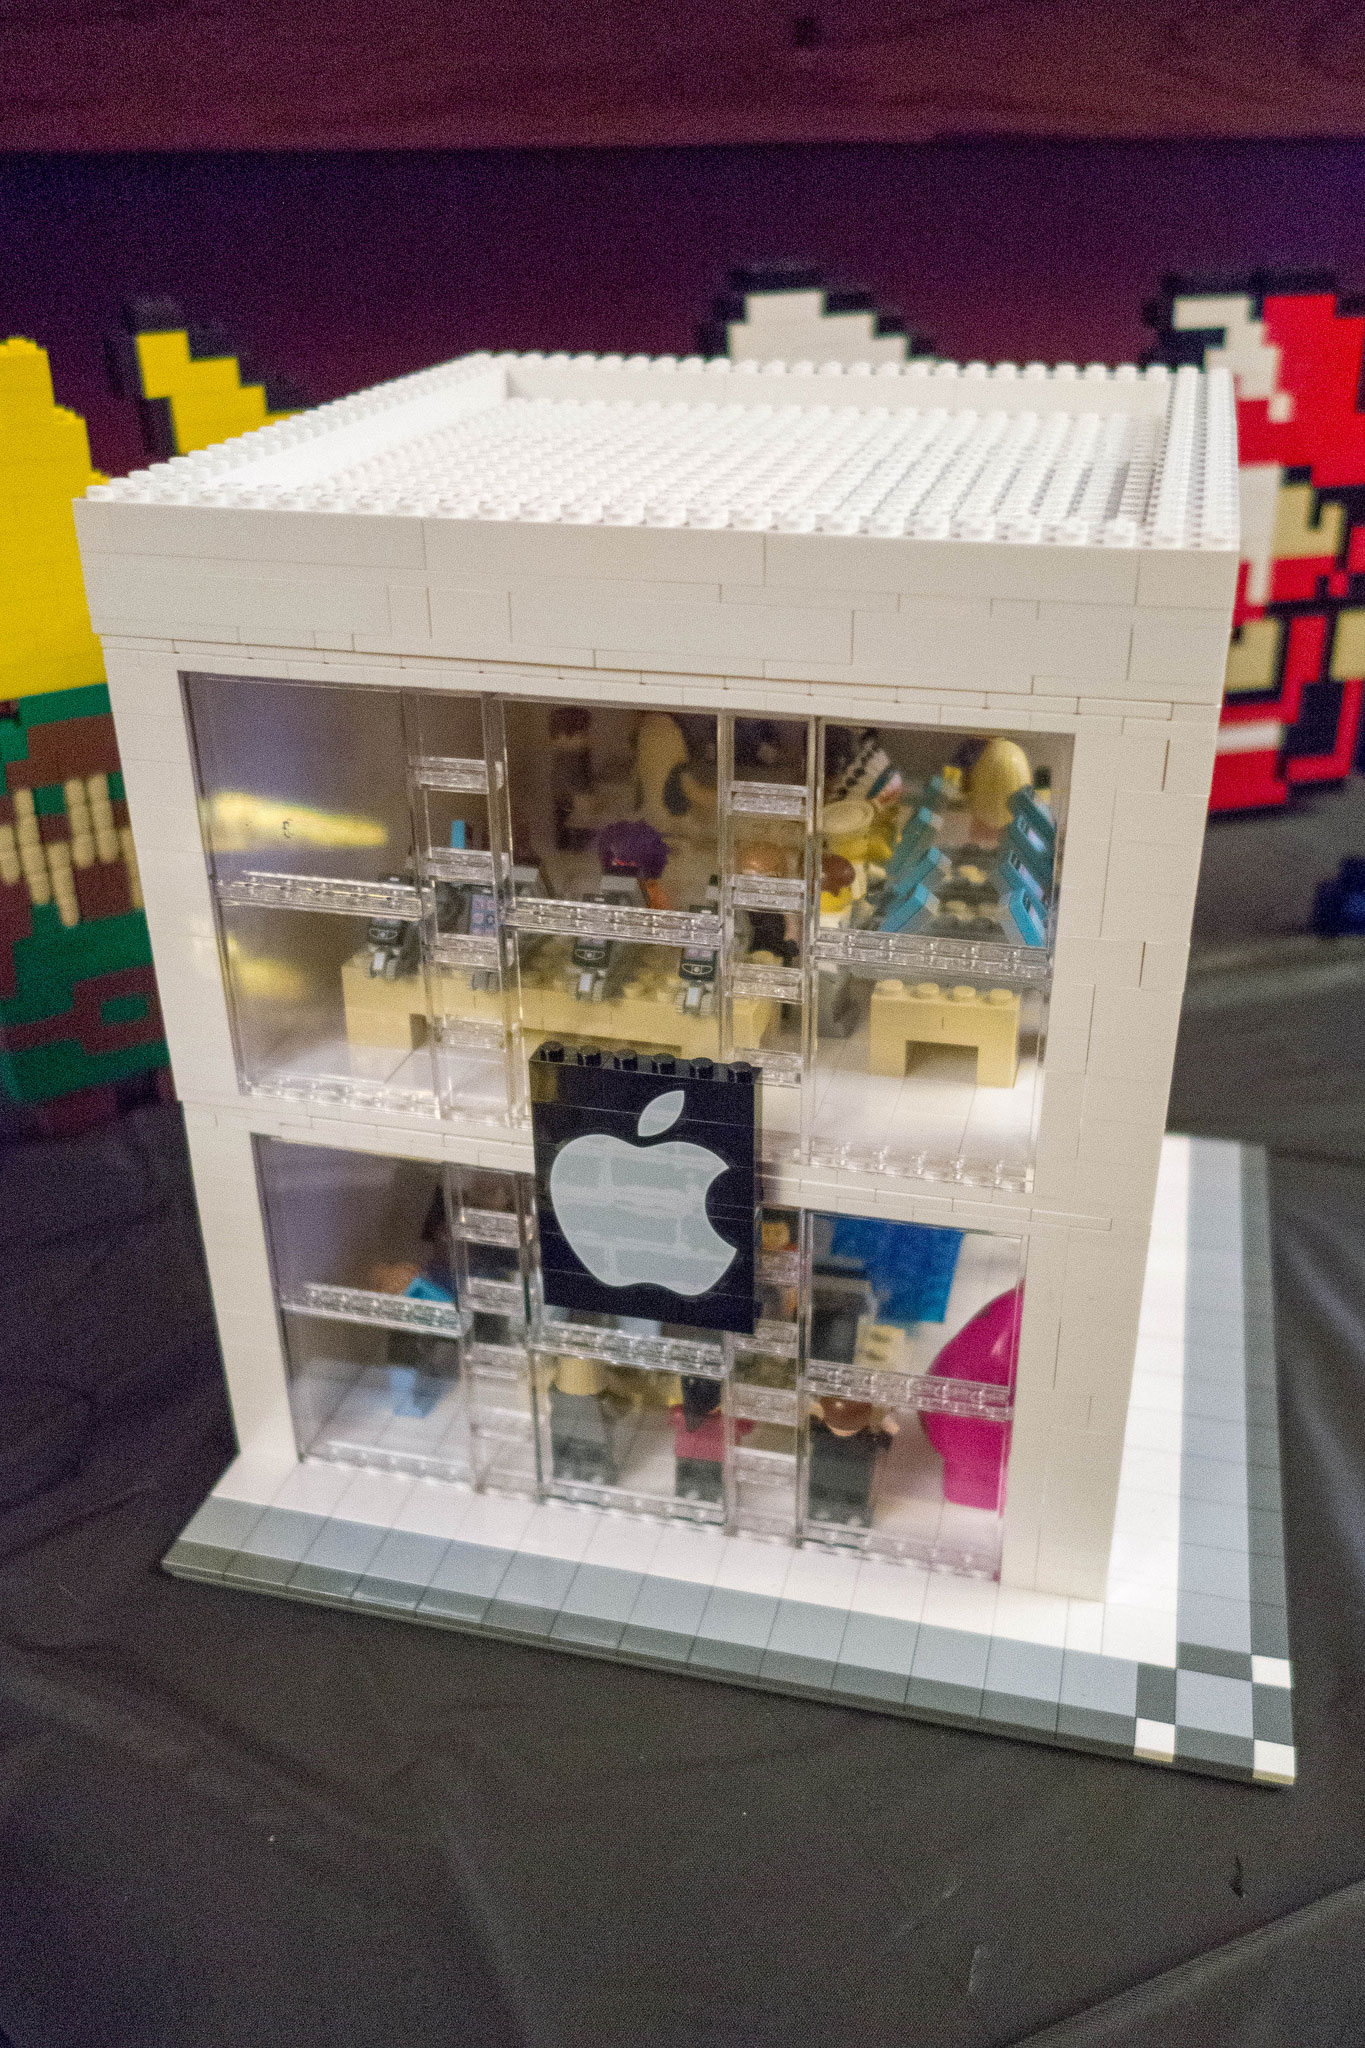 Modular Two Story LEGO Apple Store Build Even Has A Genius Bar